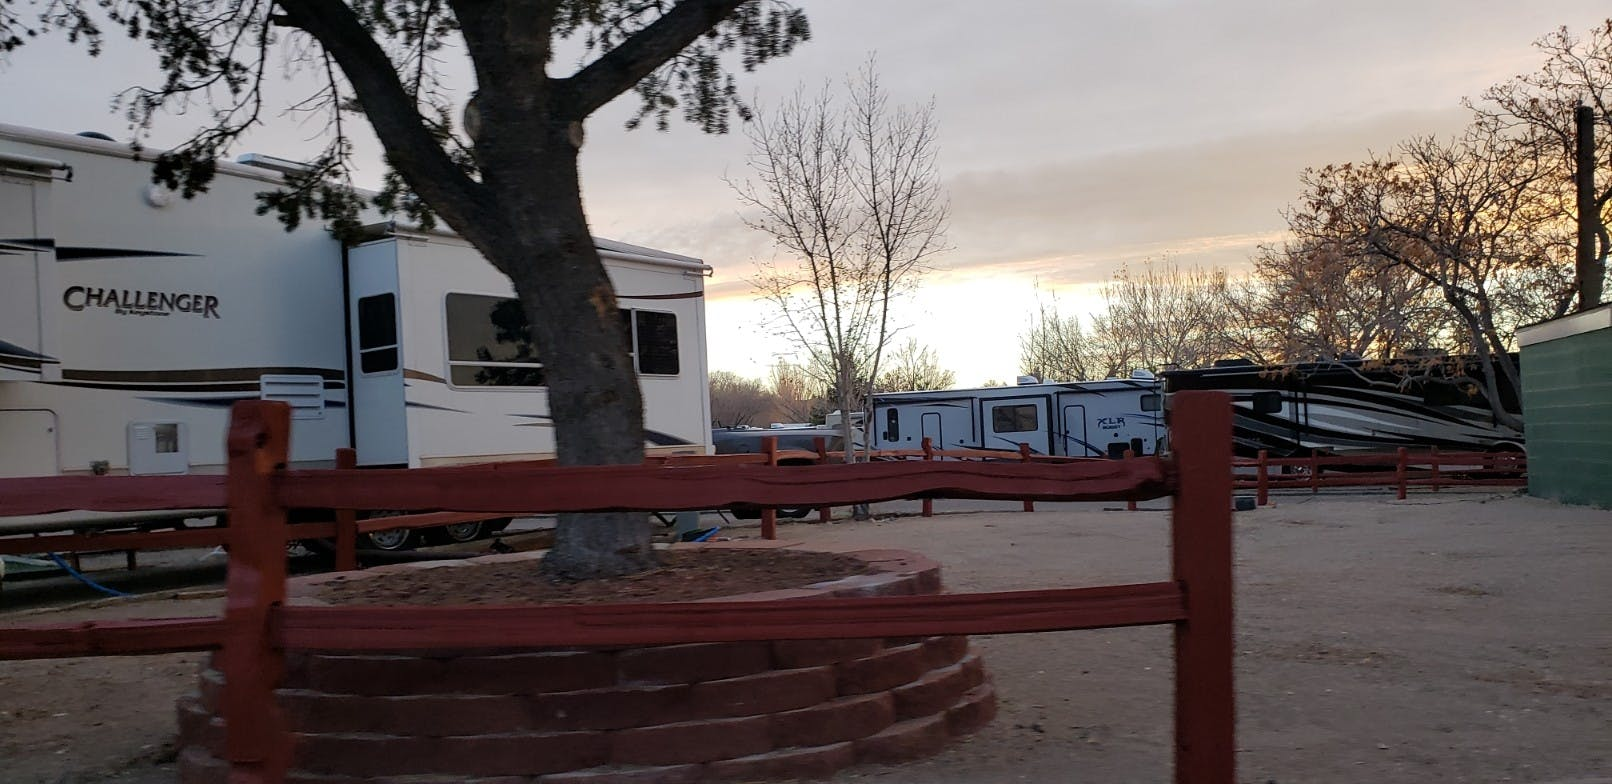 Santa Fe Koa Nm The Dyrt